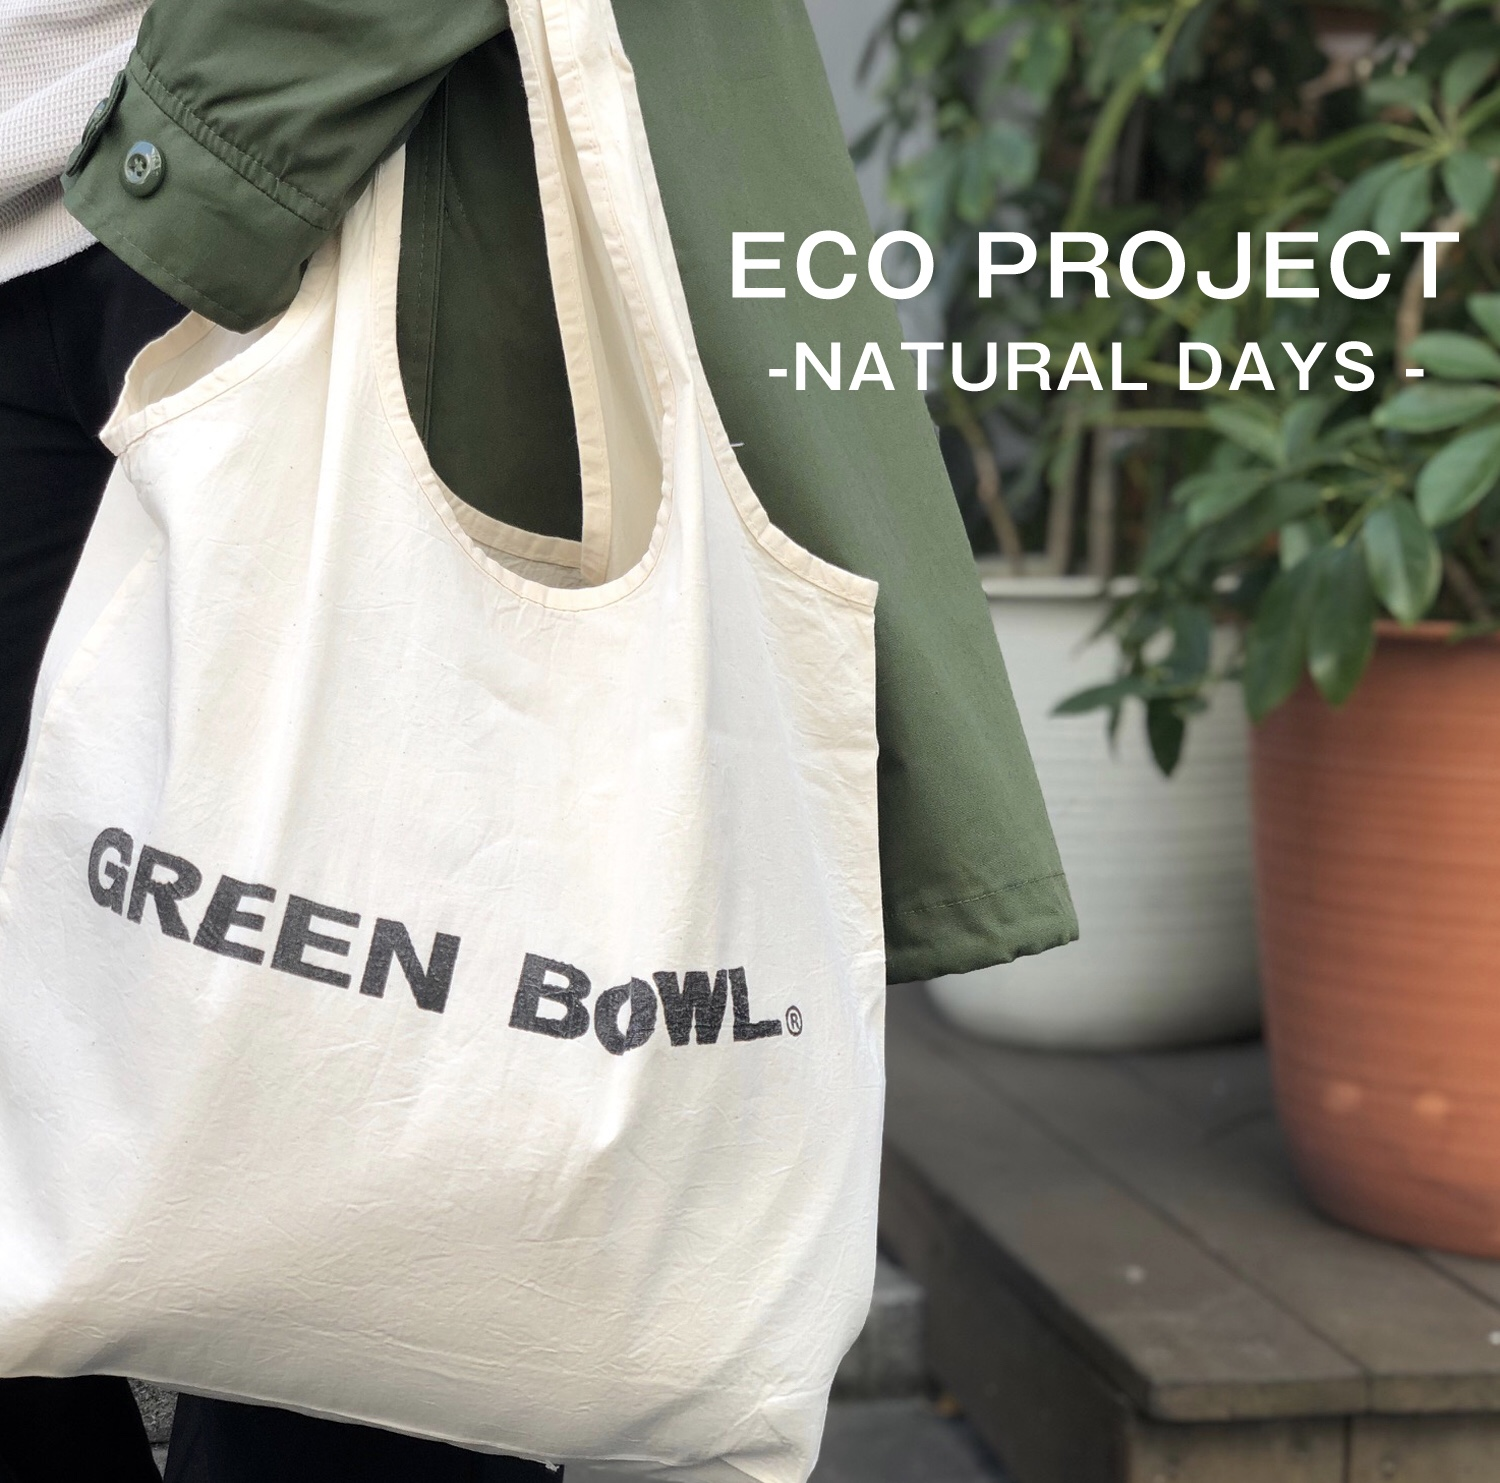 GREEN BOWL®︎ eco project!!!